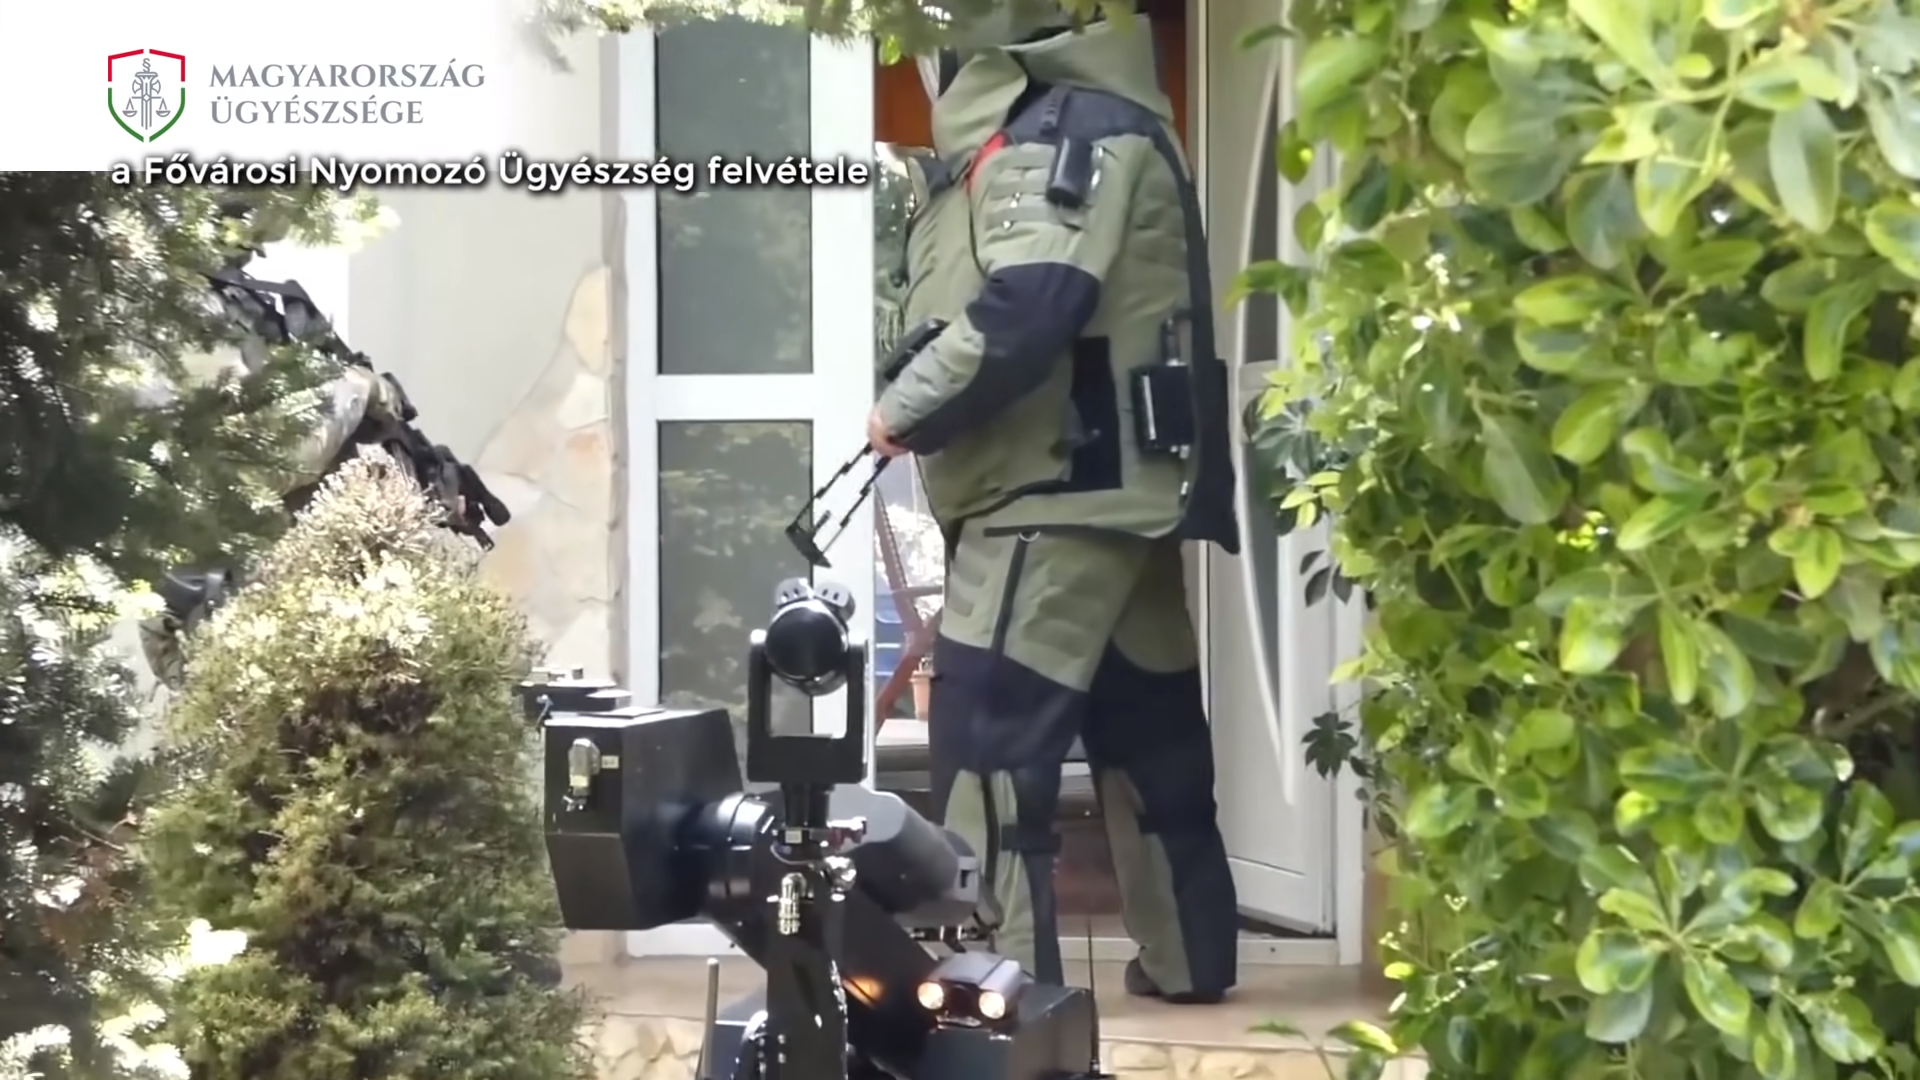 Suspected Hungarian Terrorist Denies Charges of Planned Attacks